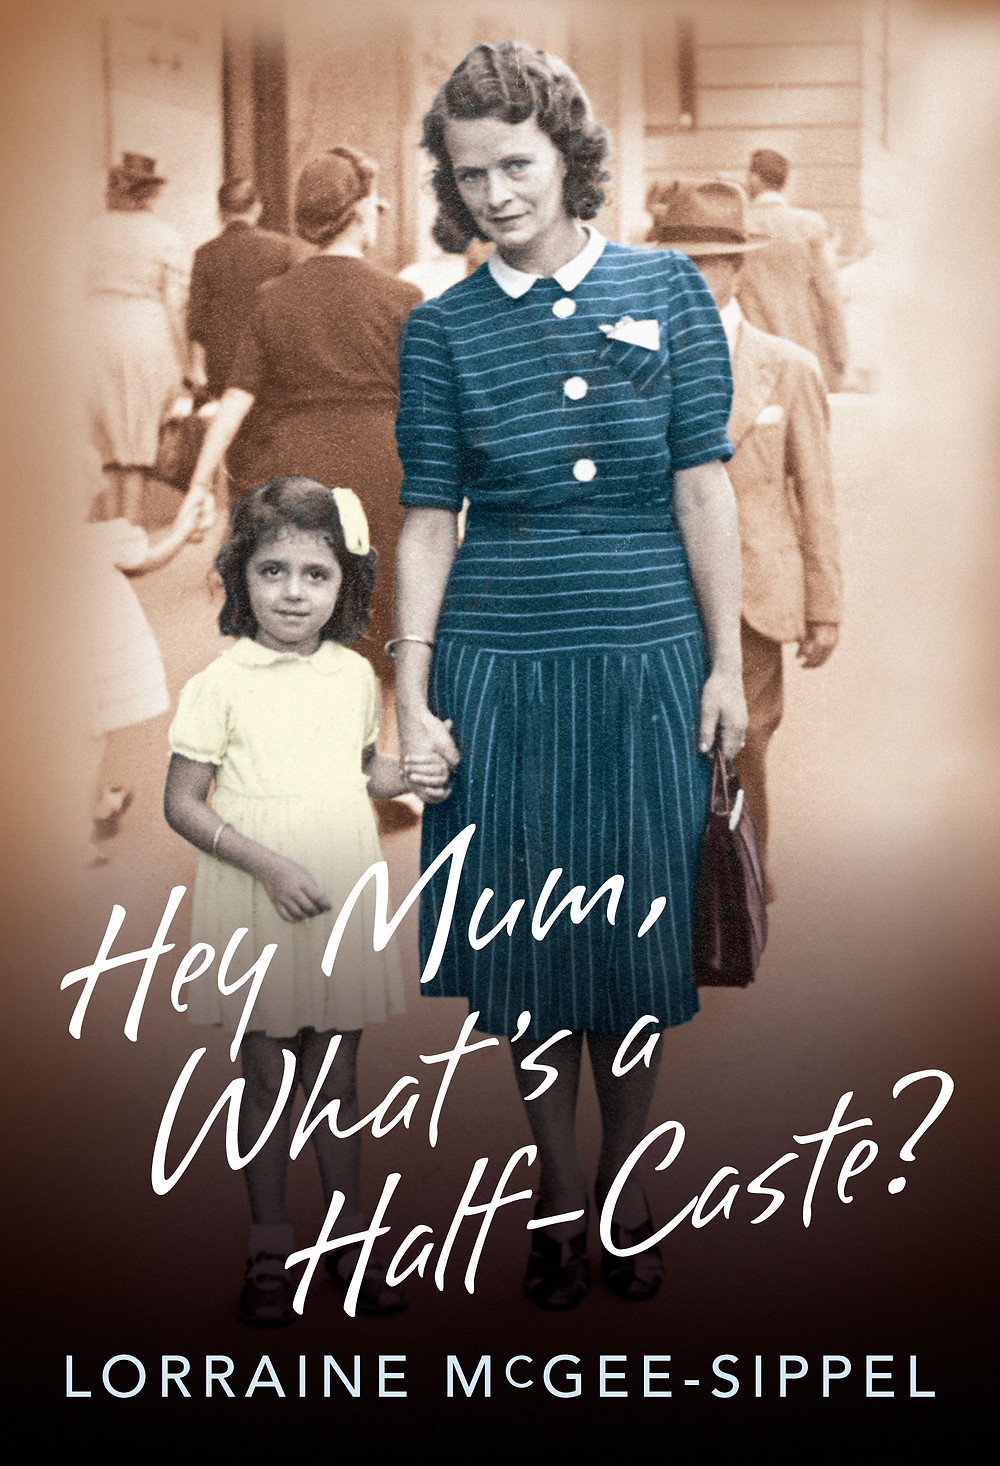 Hey Mum What's a Half-Caste by Lorraine McGee-Sipple